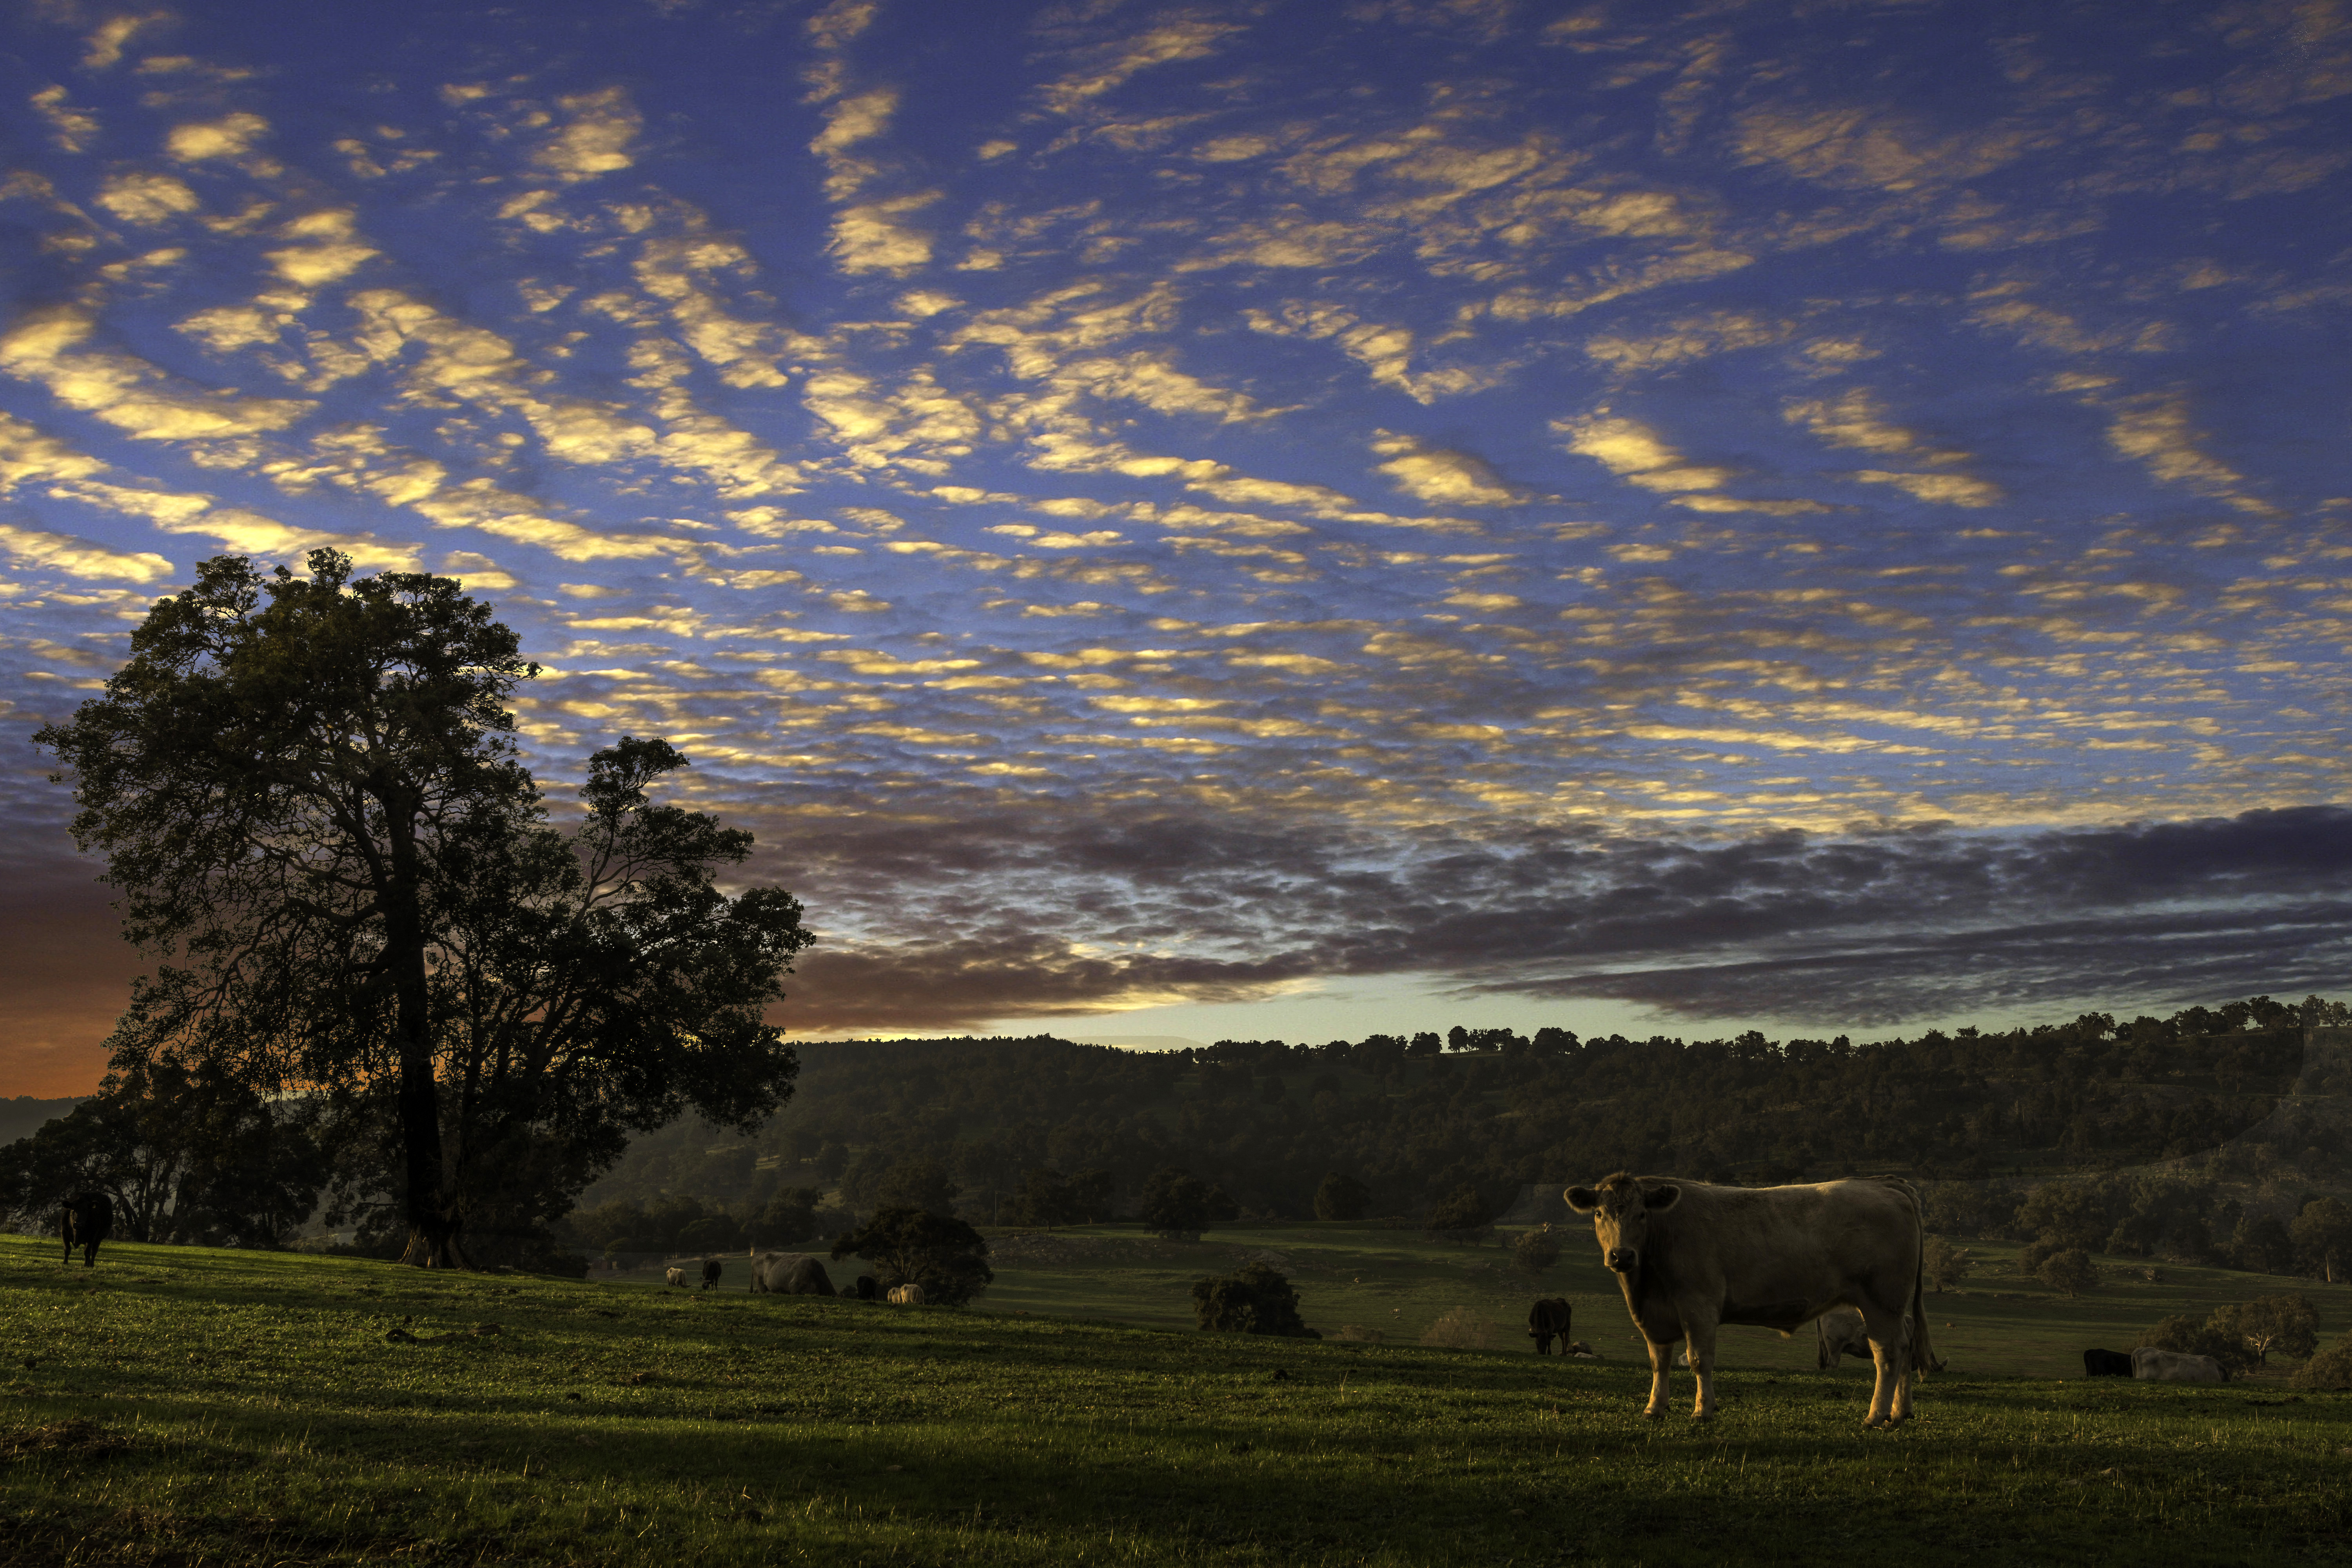 Sky Over The Farm Landscape With Cow At Dusk Image Free Stock Electric Barbed Wire Photo Public Domain Pictures